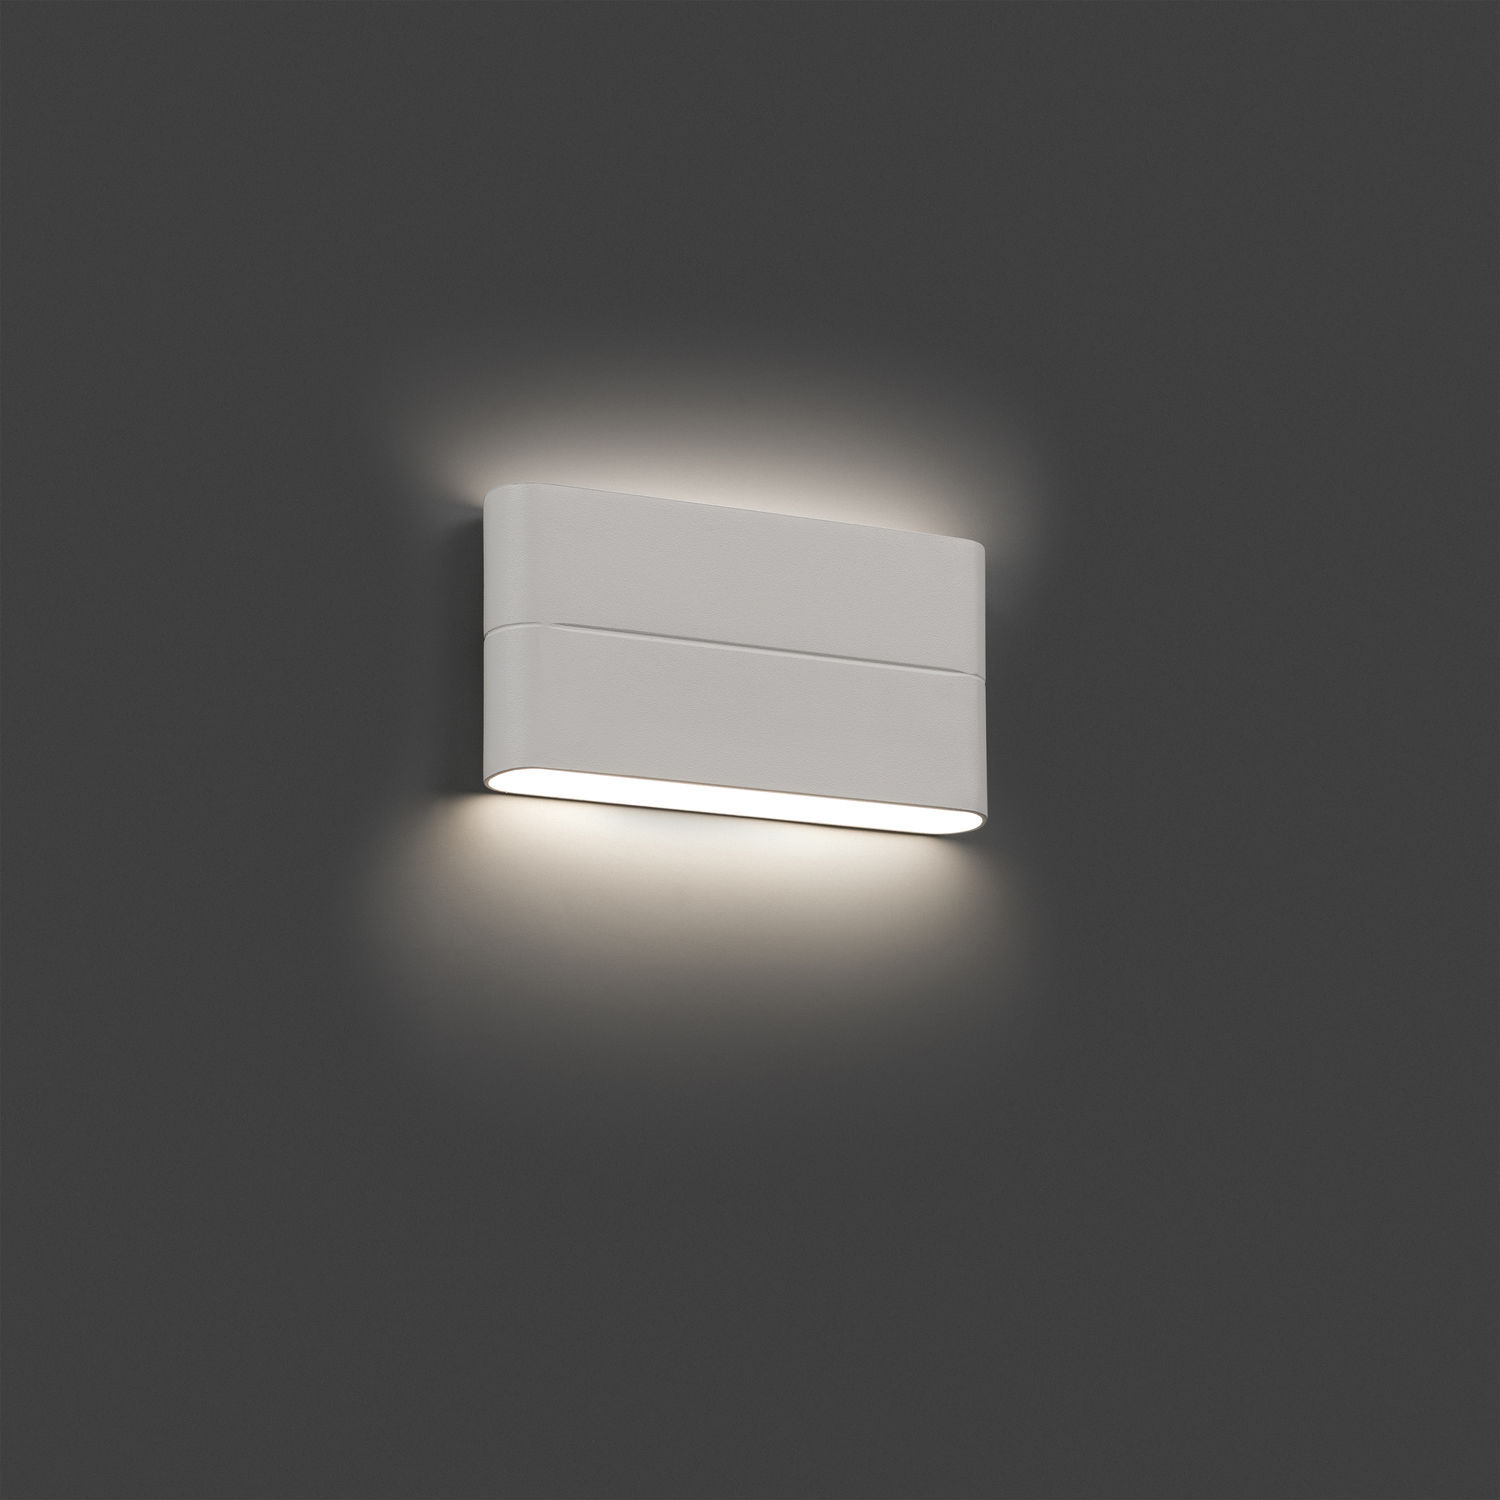 Applique murale d 39 ext rieur aday 2 led ip54 blanc l17 for Applique murale d angle exterieur